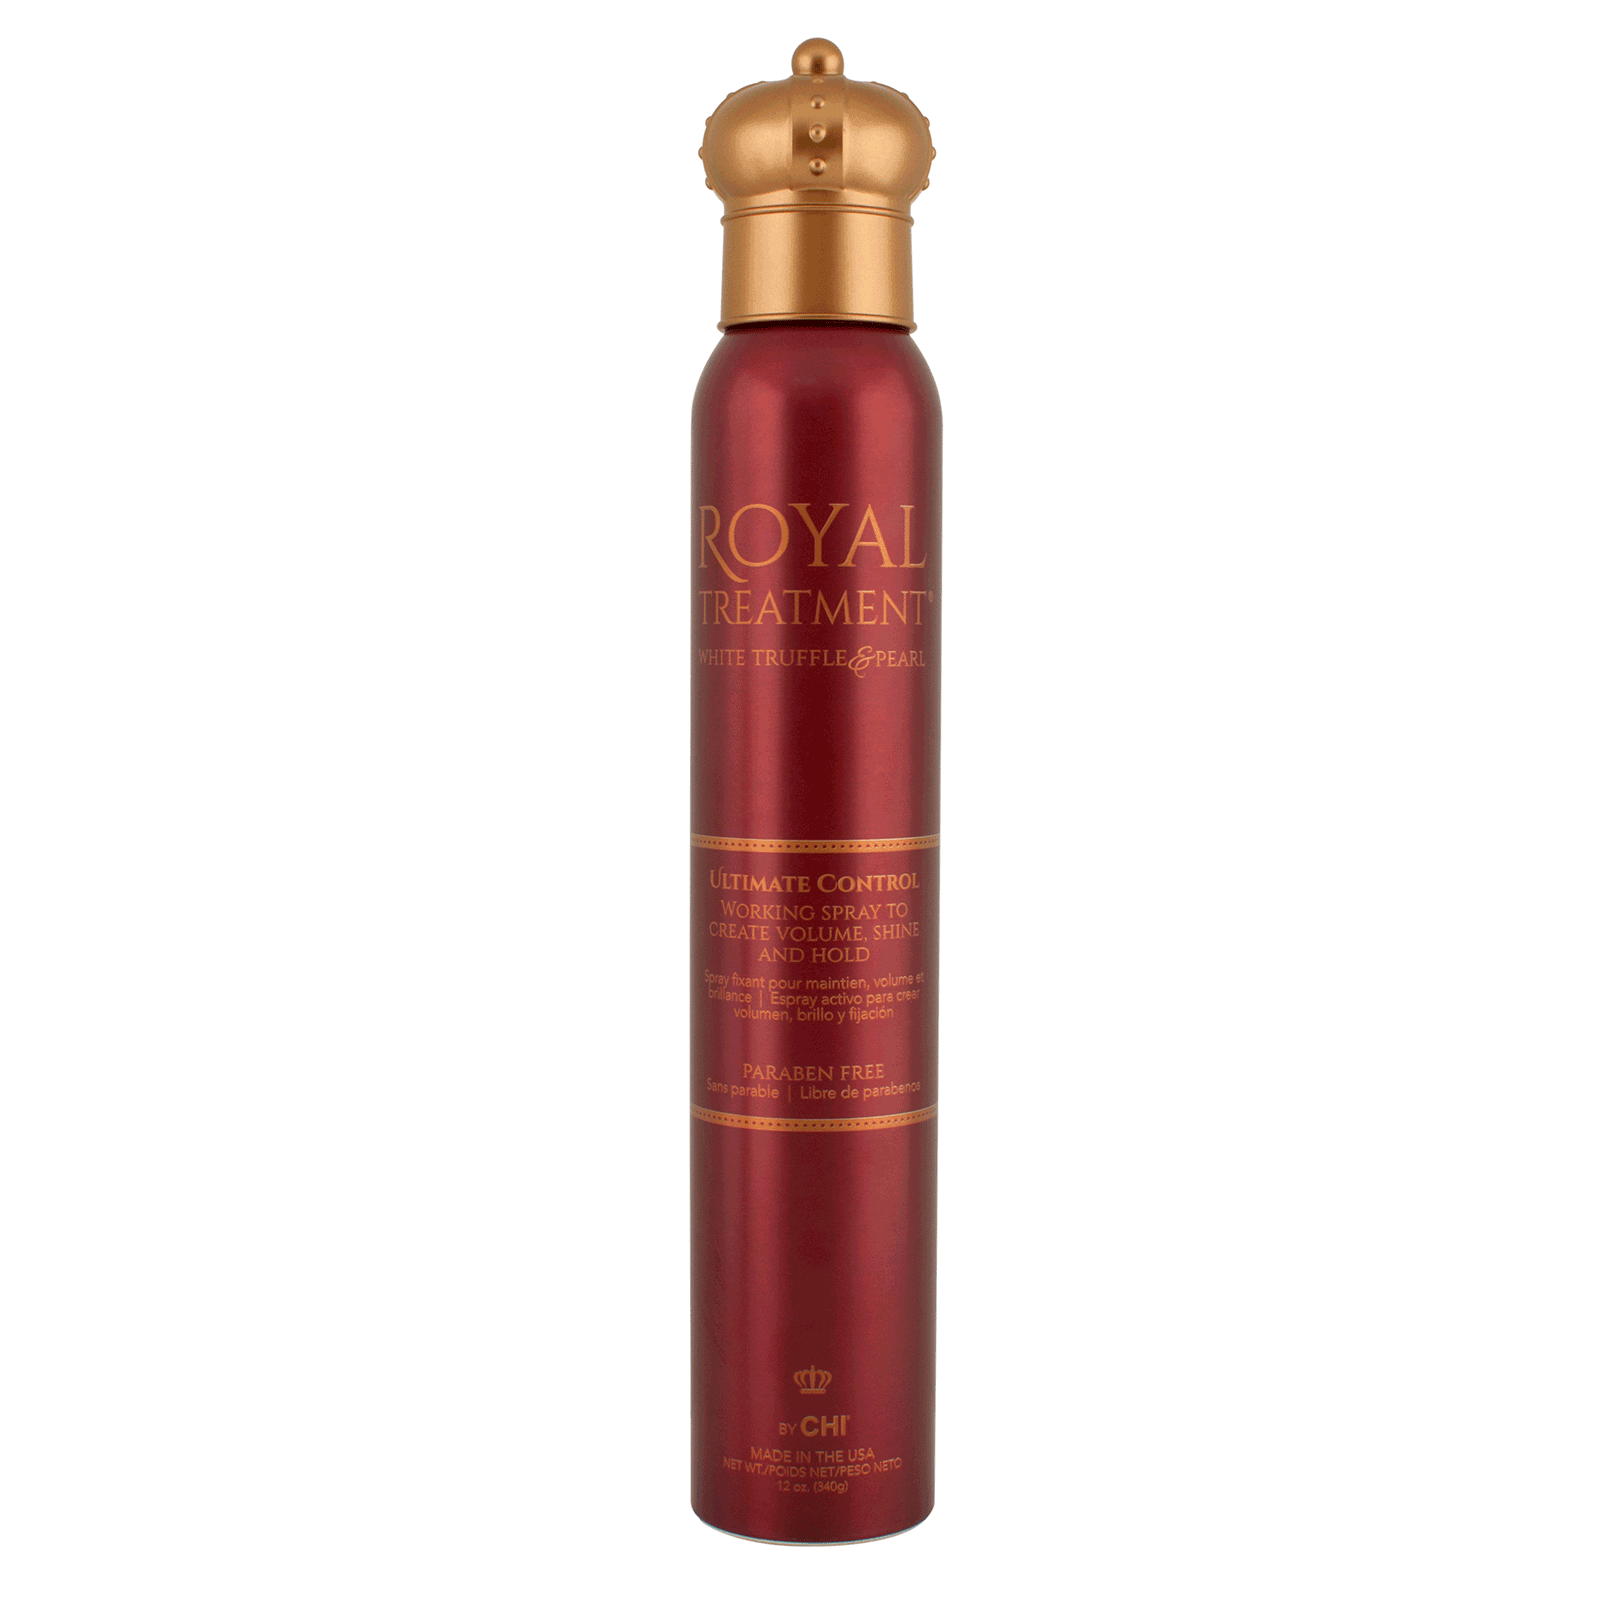 Royal Treatment Ultimate Control Hairspray